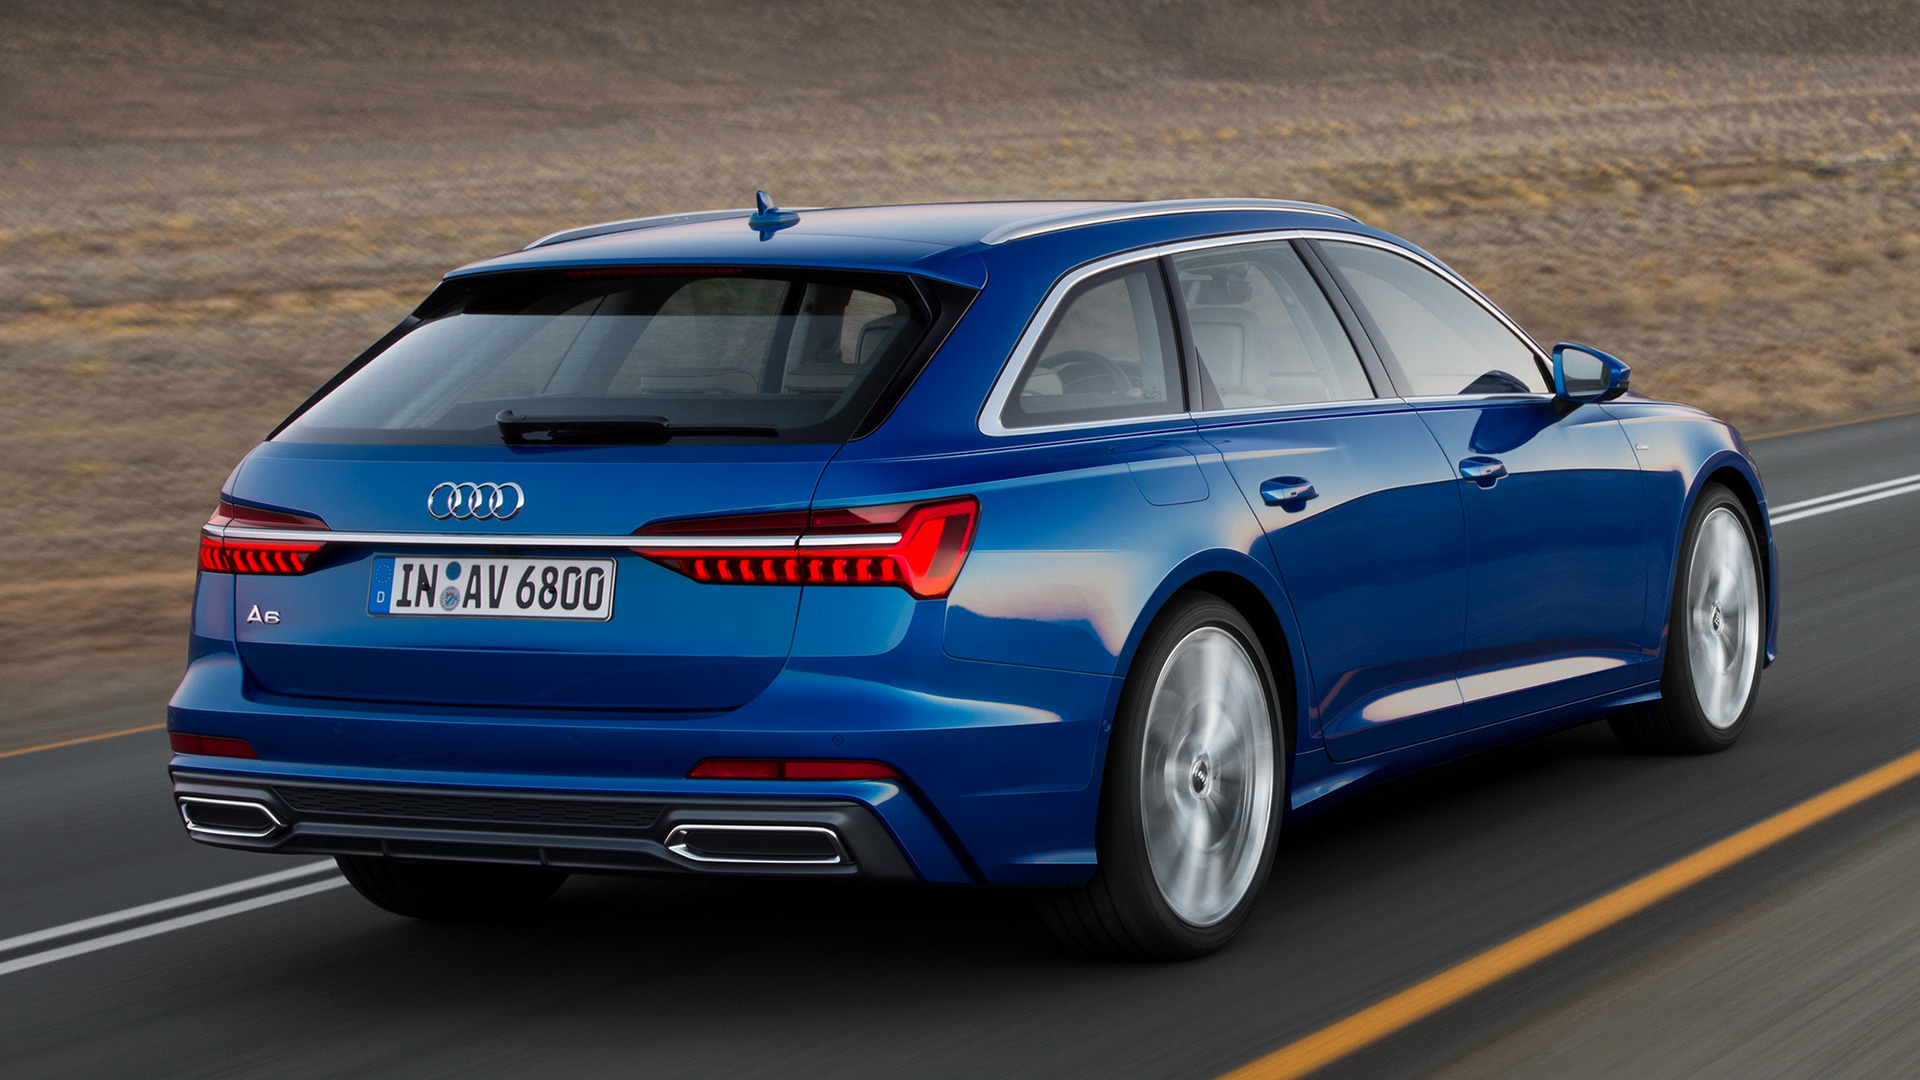 2018 Audi A6 Avant S Line Wallpapers And Hd Images Car